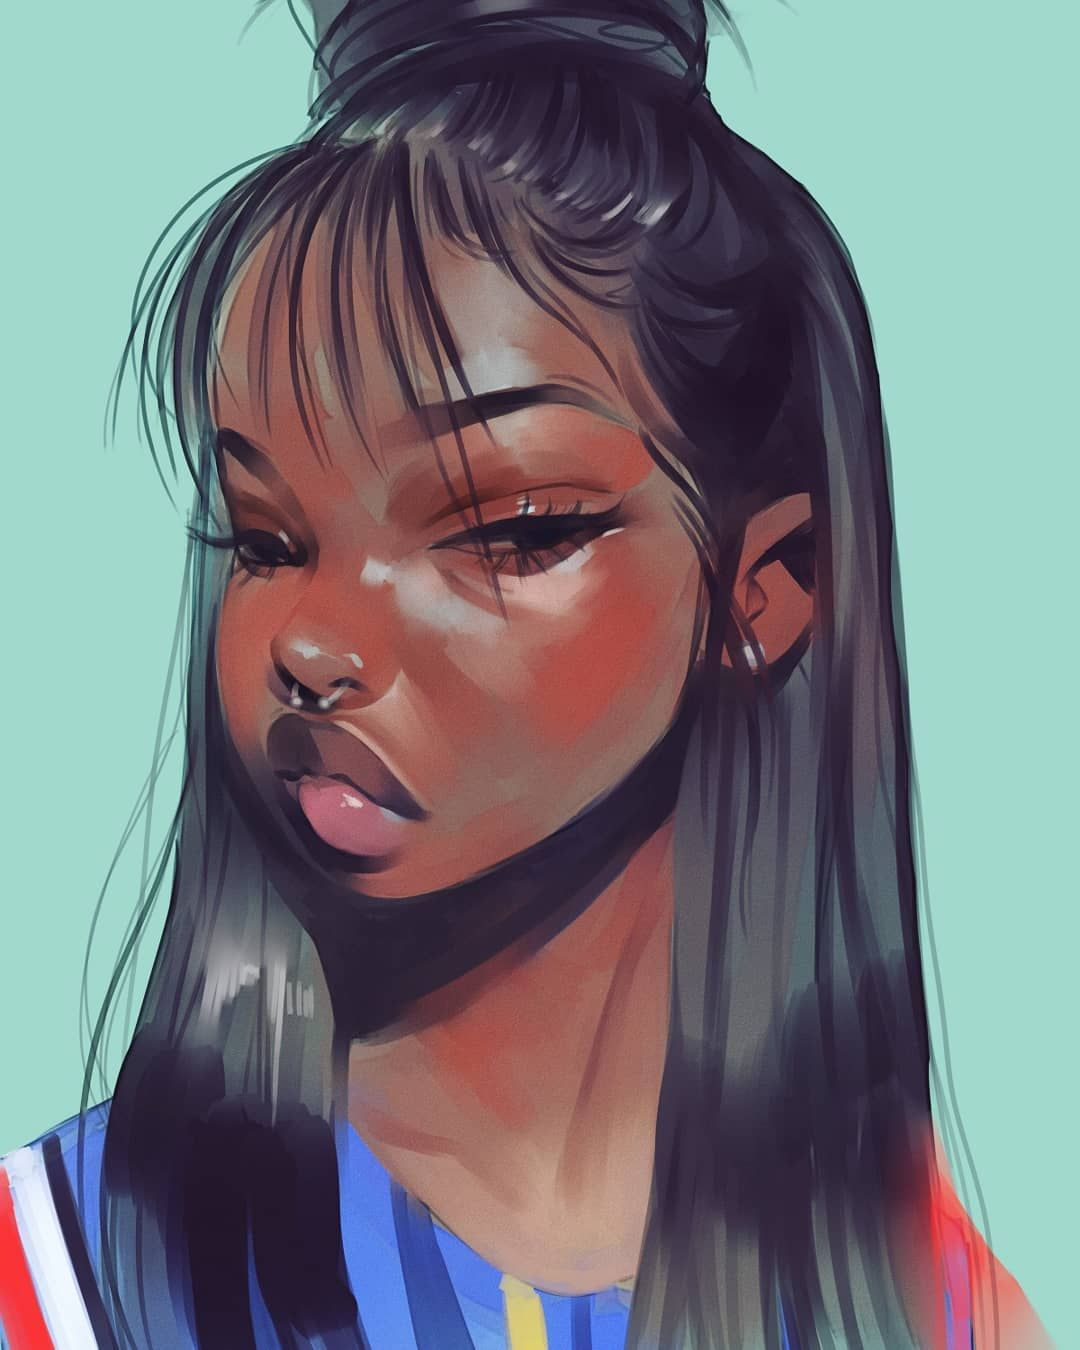 Aaliya July X On Instagram Photo Study In My Style Tag The Person In The Photo Also In 2020 Black Girl Magic Art Black Girl Art Black Girl Cartoon